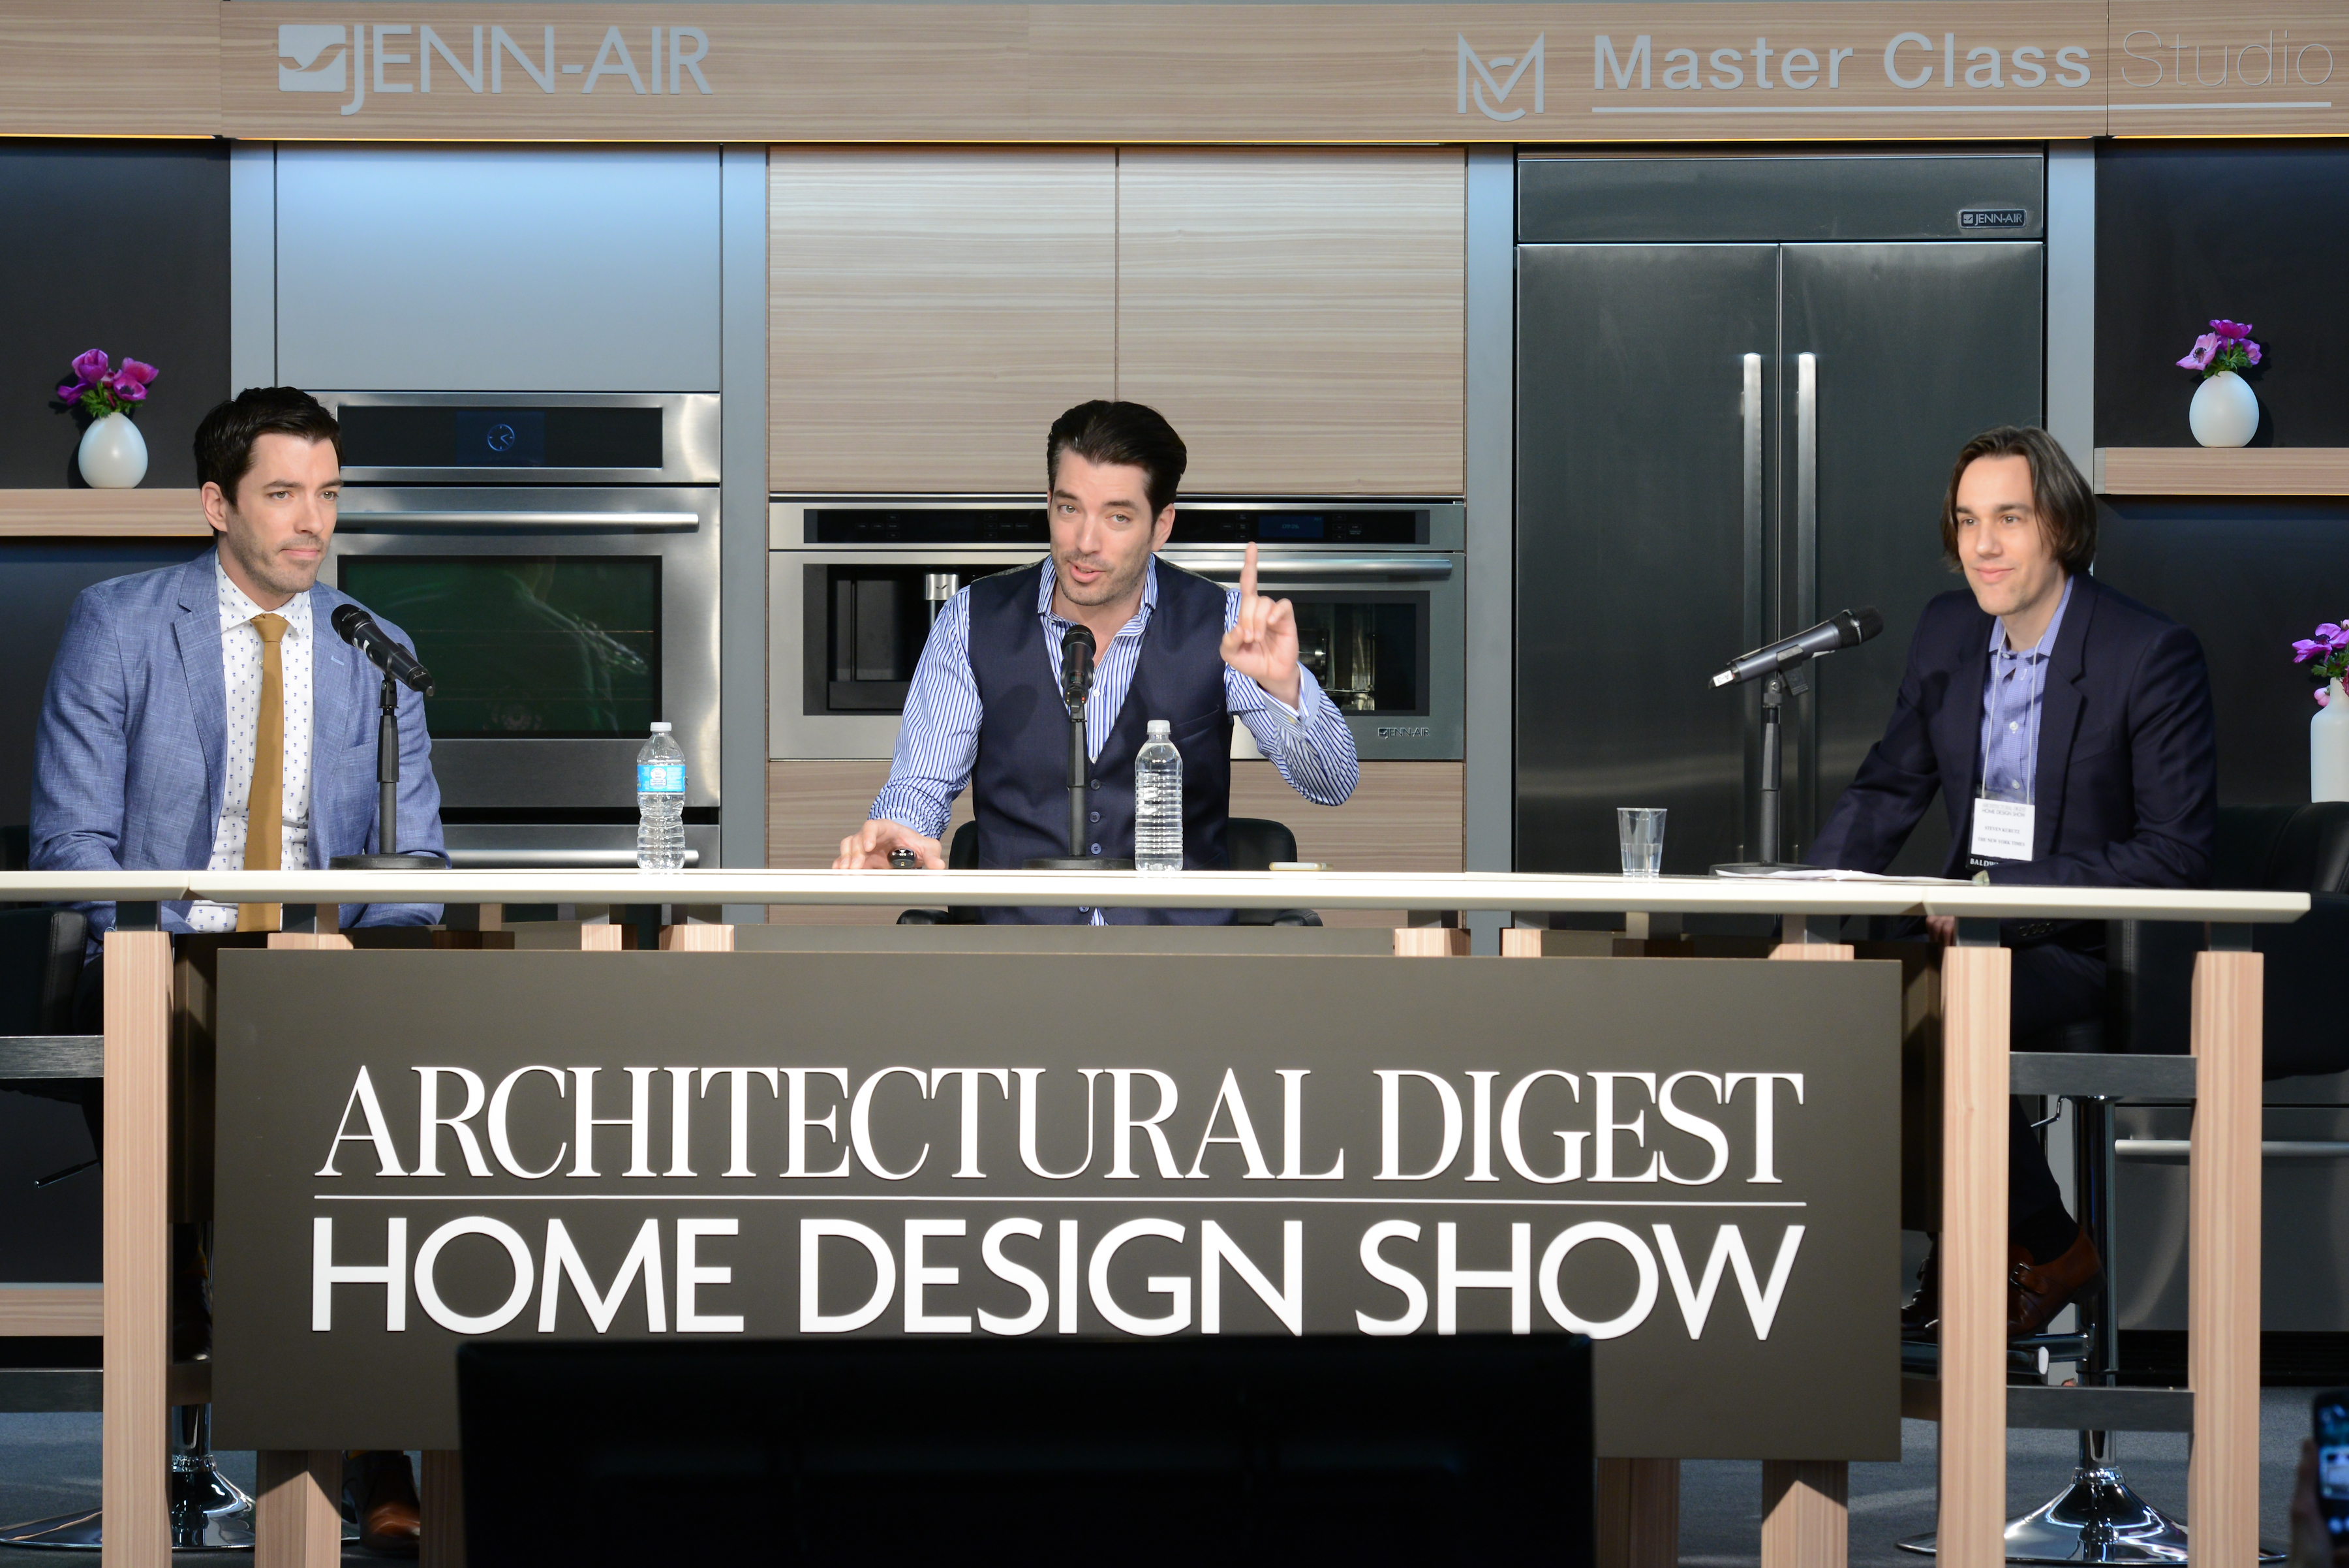 Architectural digest home design show 2015 ad360 for Architectural digest home show